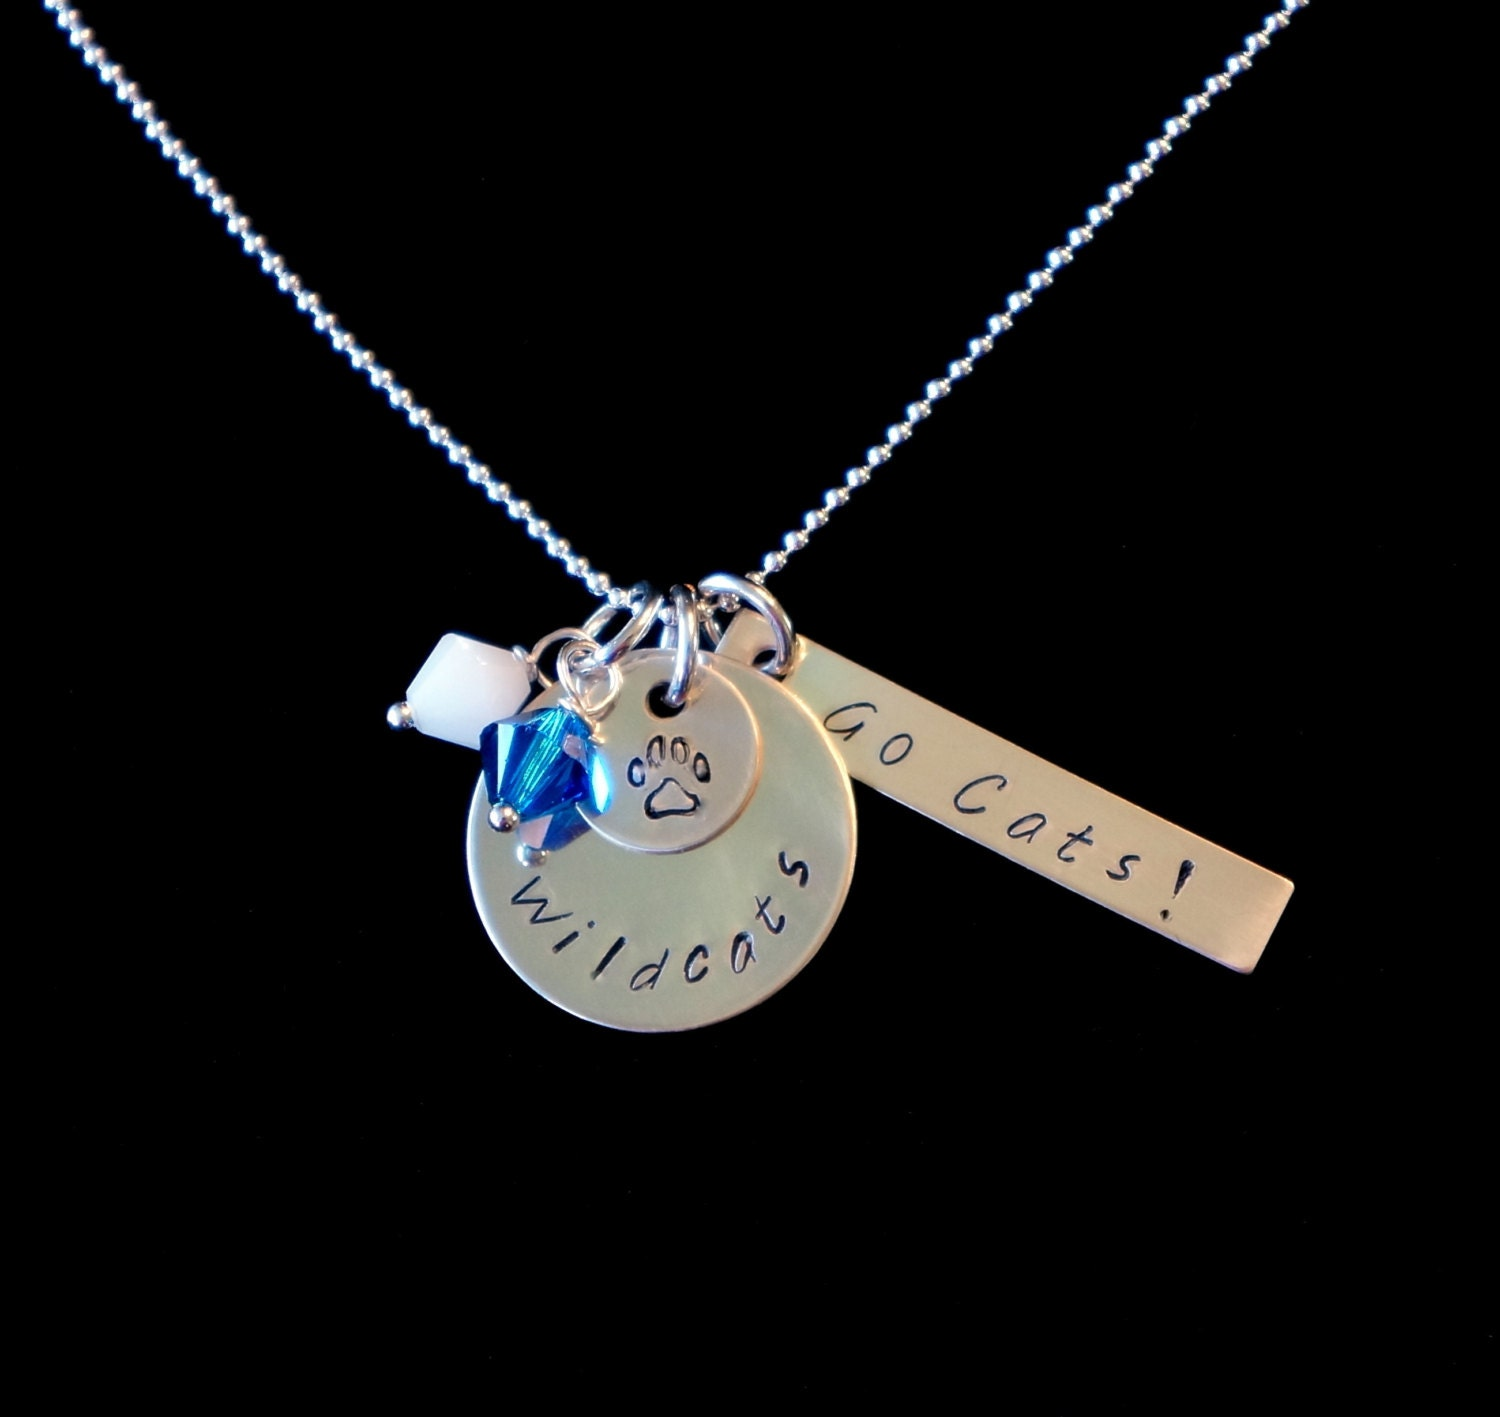 wildcats of kentucky jewelry uk wildcats necklace